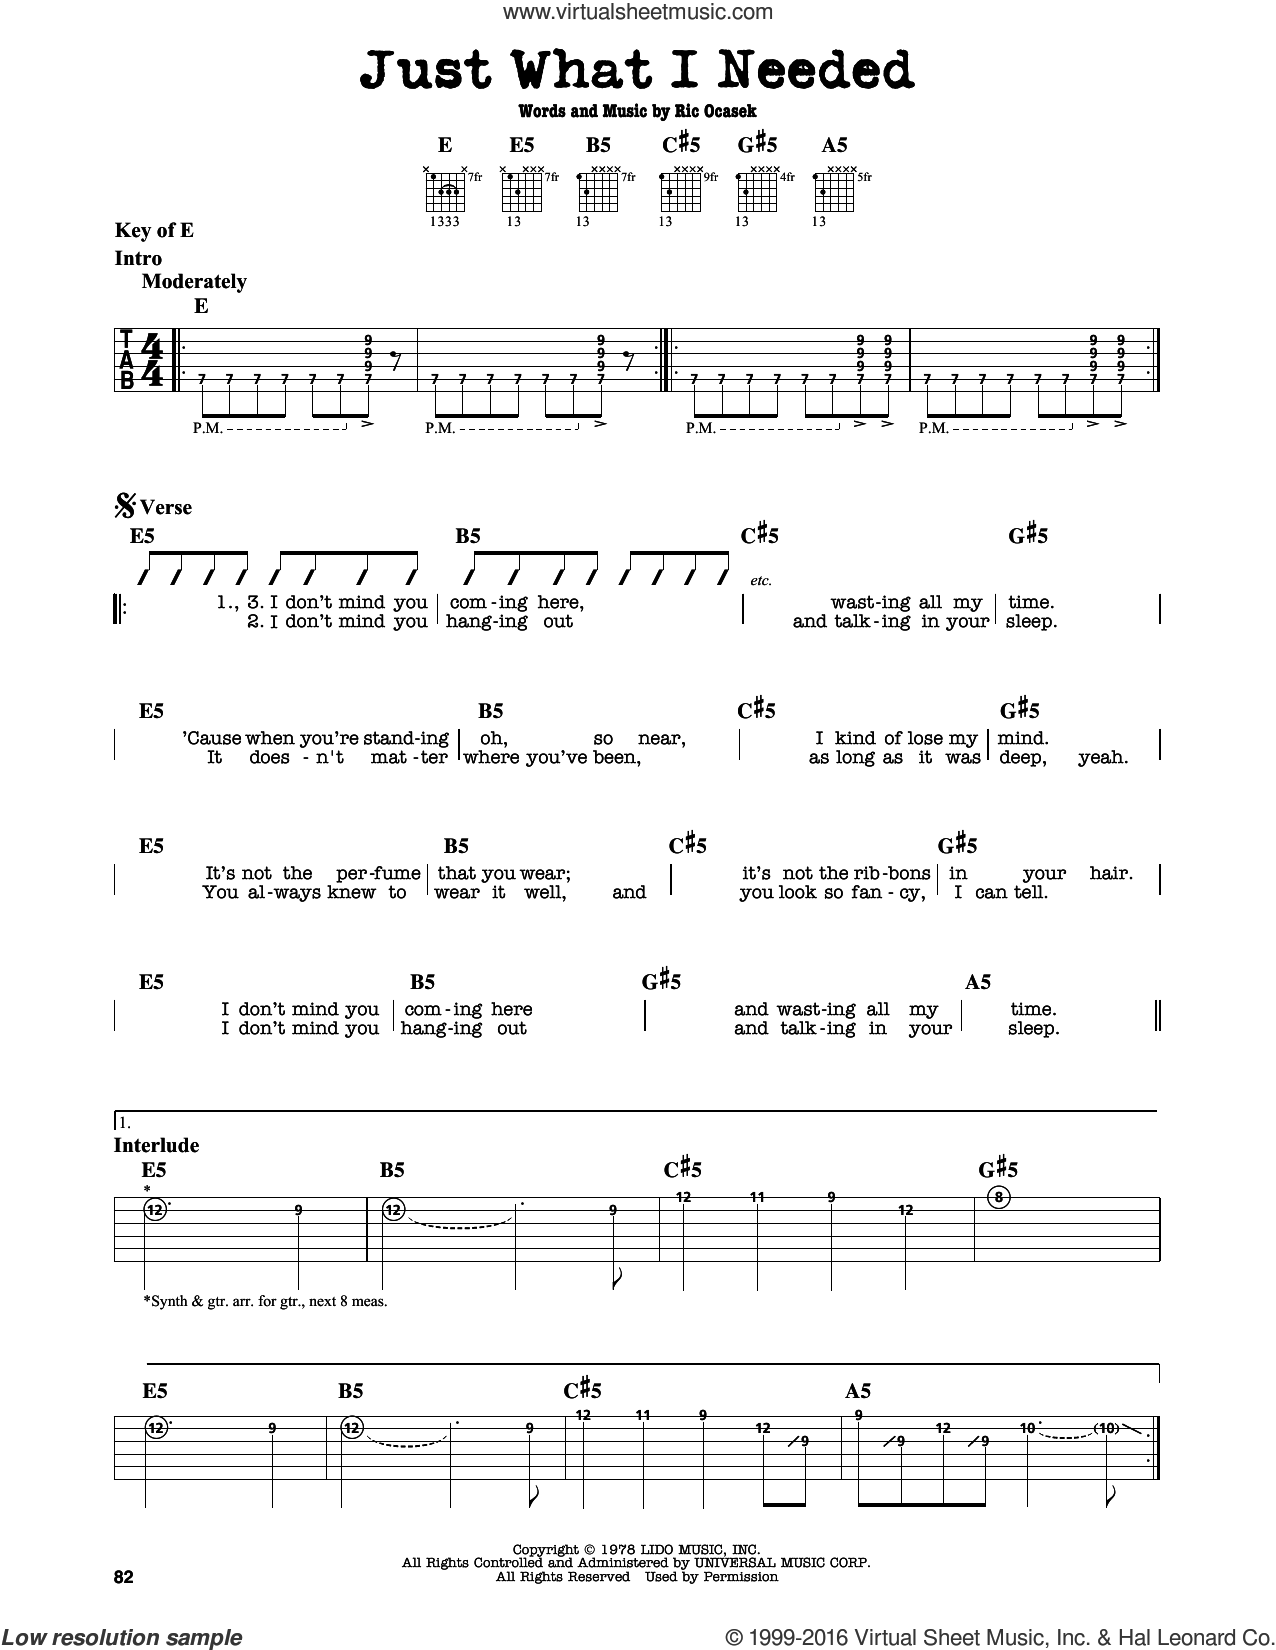 Just What I Needed sheet music for guitar solo (lead sheet) by Ric Ocasek